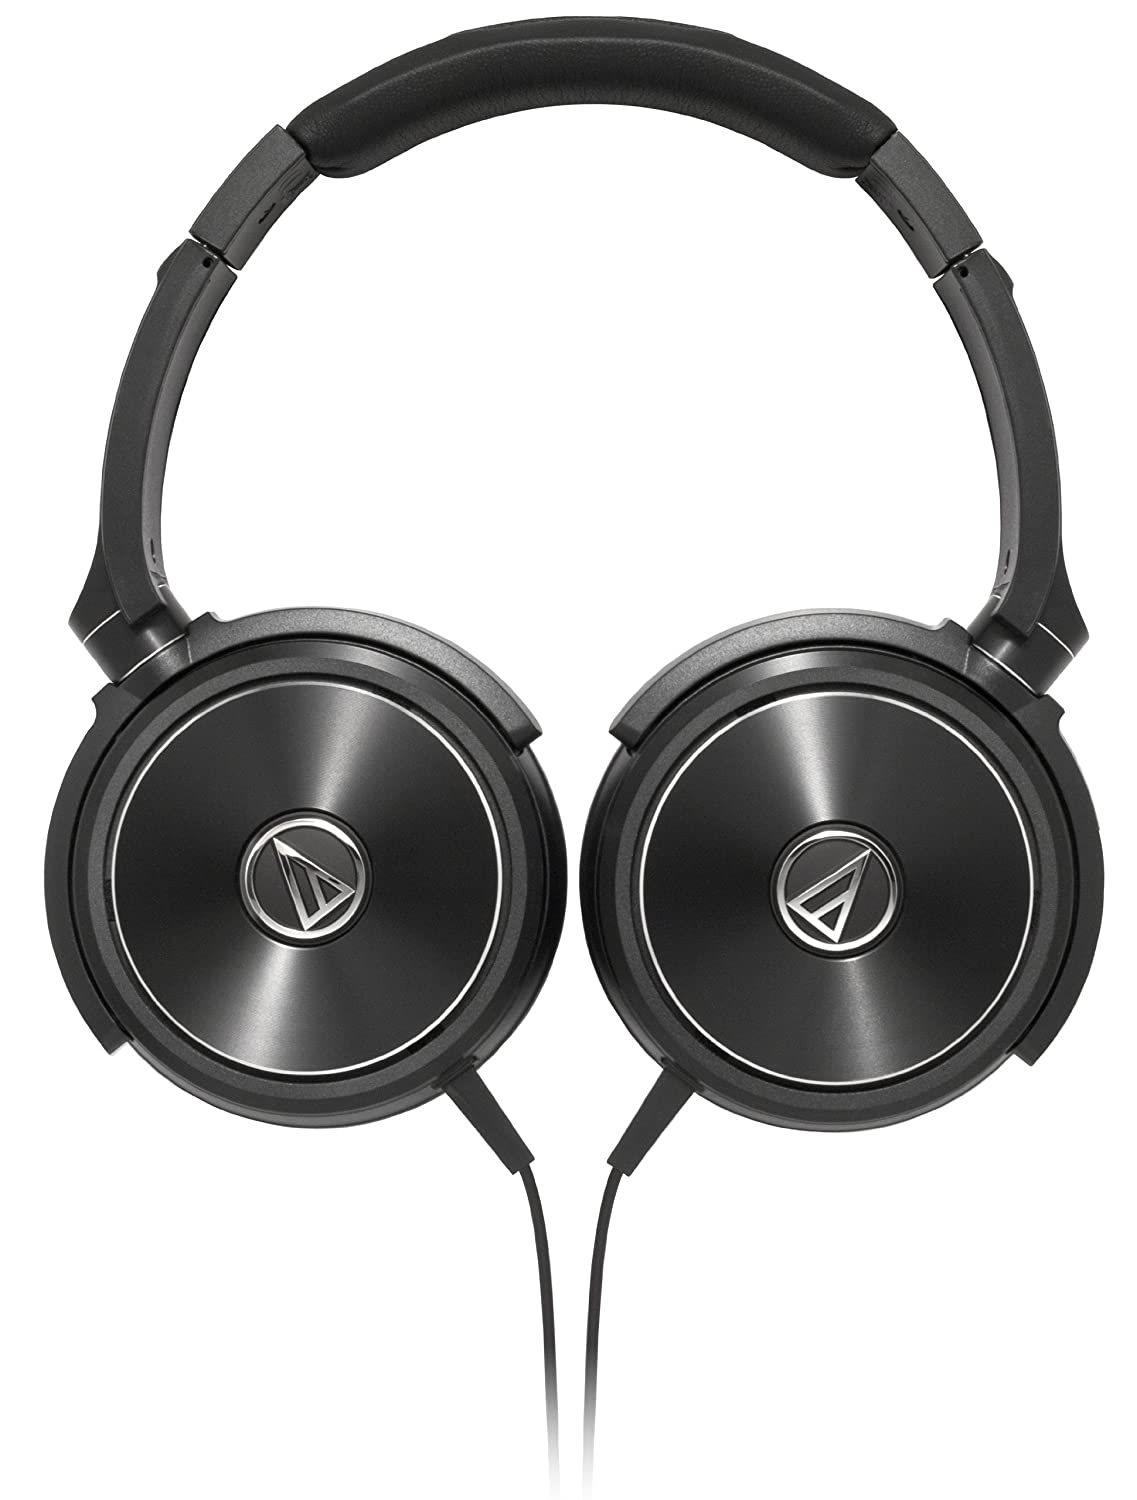 Solid Bass ATH-WS99  Over-Ear Headphones by Audio-Technica -Best Gadgets Outlet